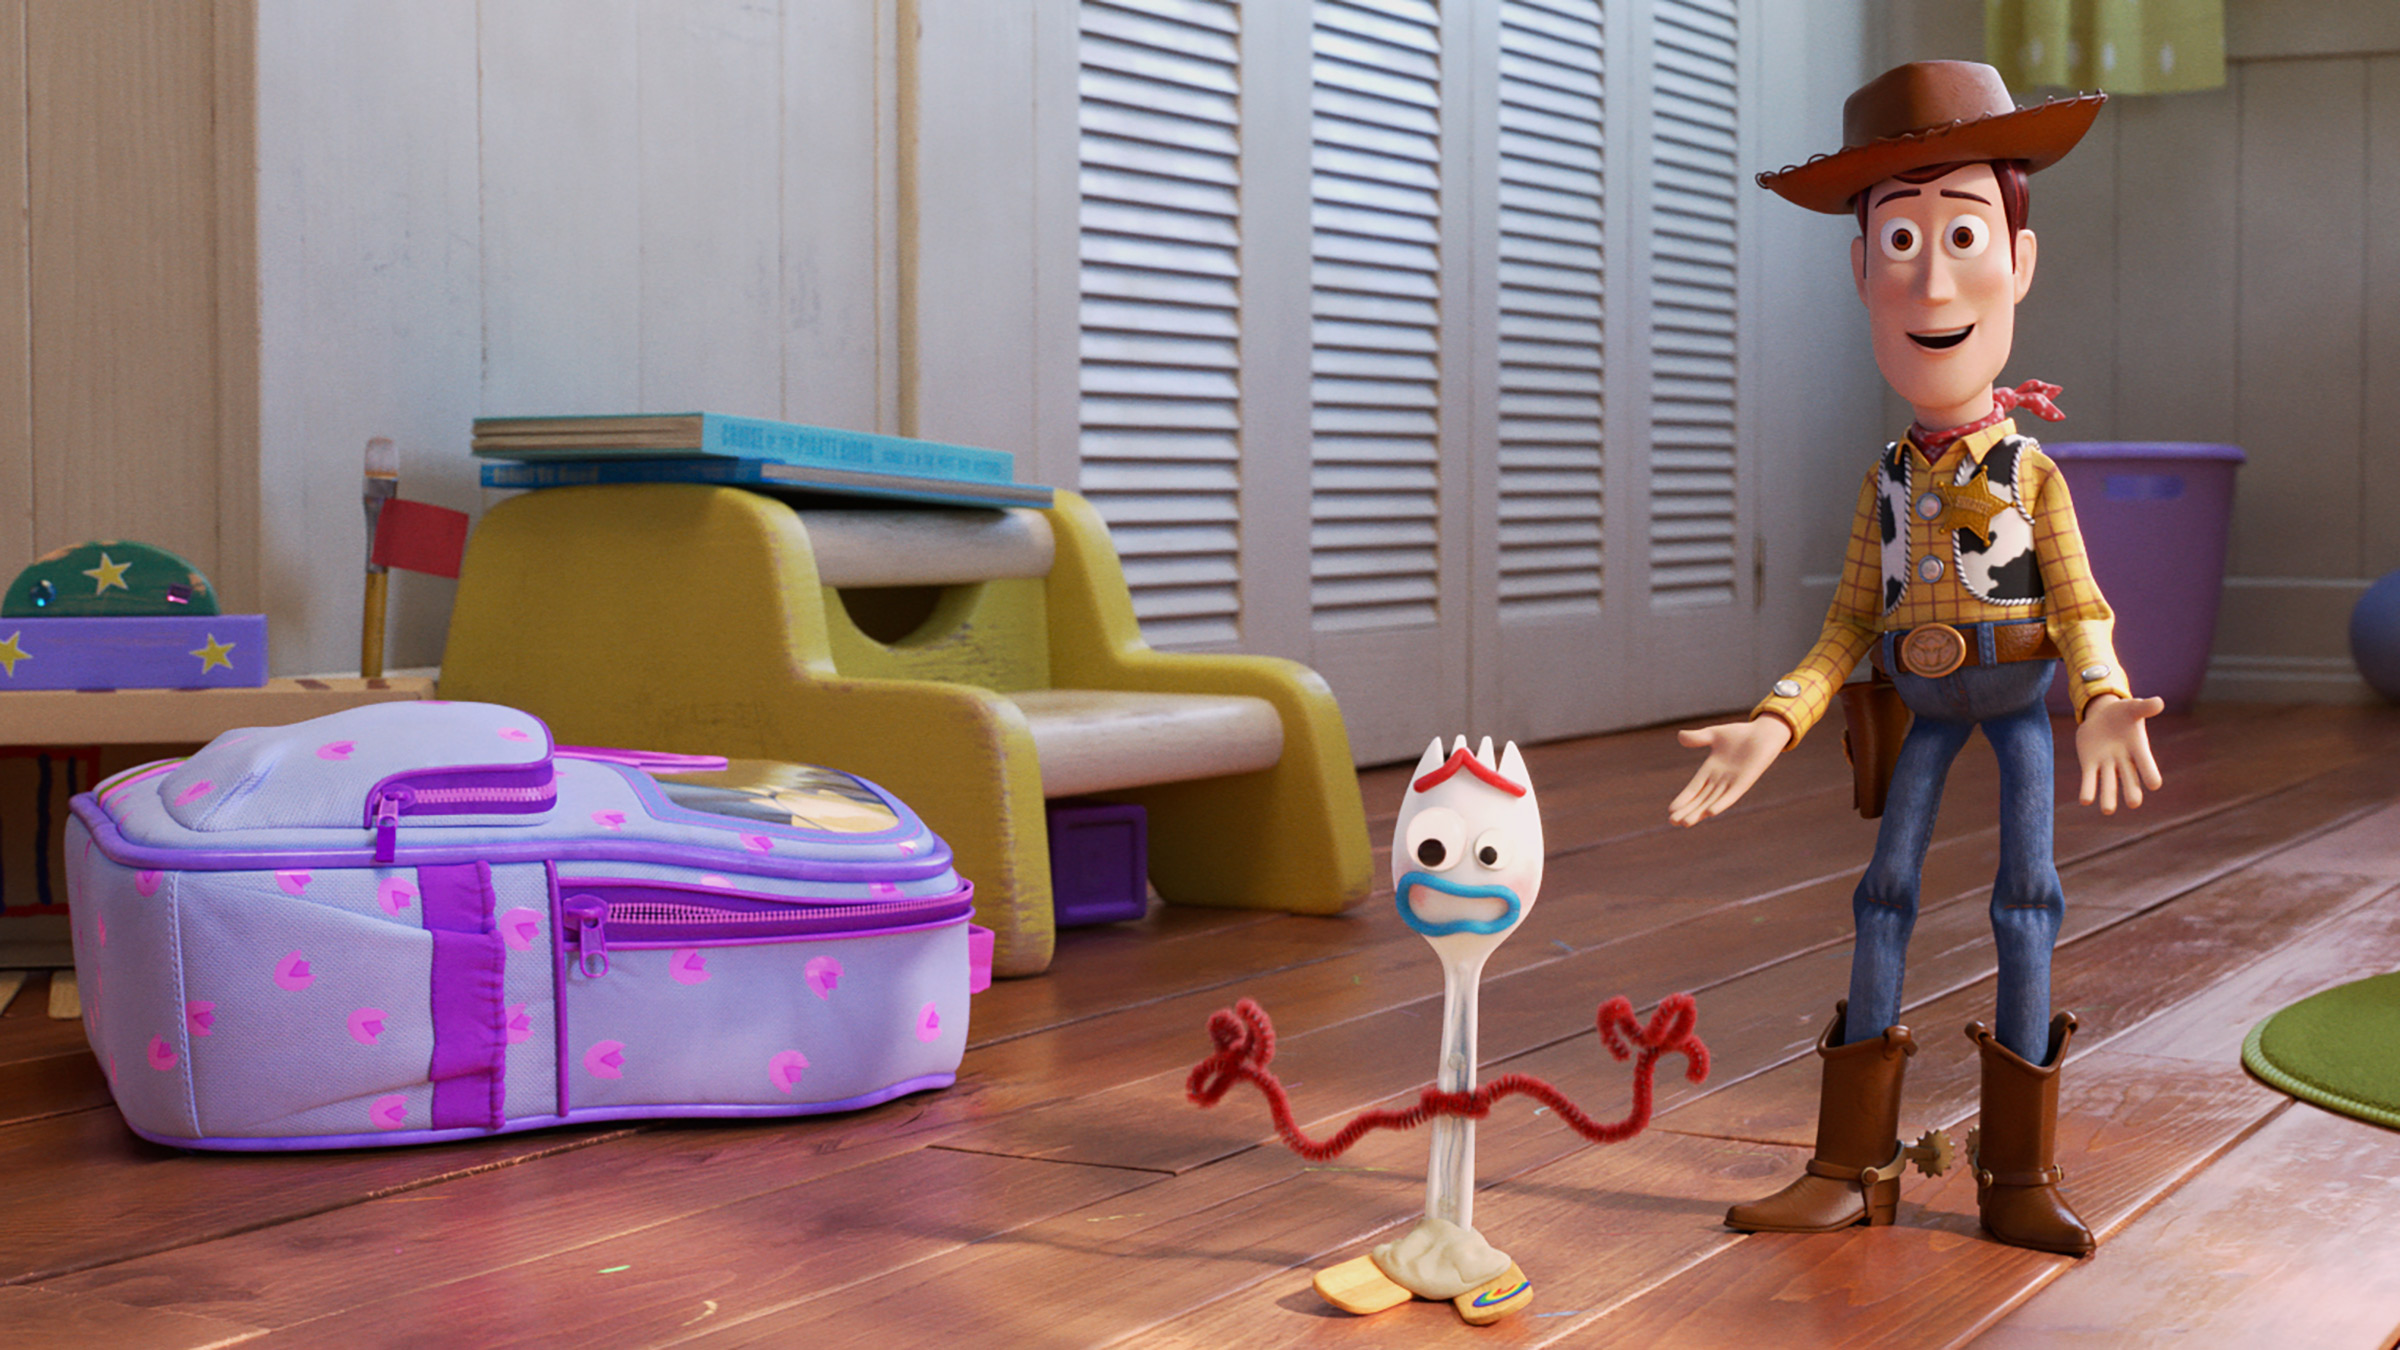 toy-story-4-movie-review.jpg